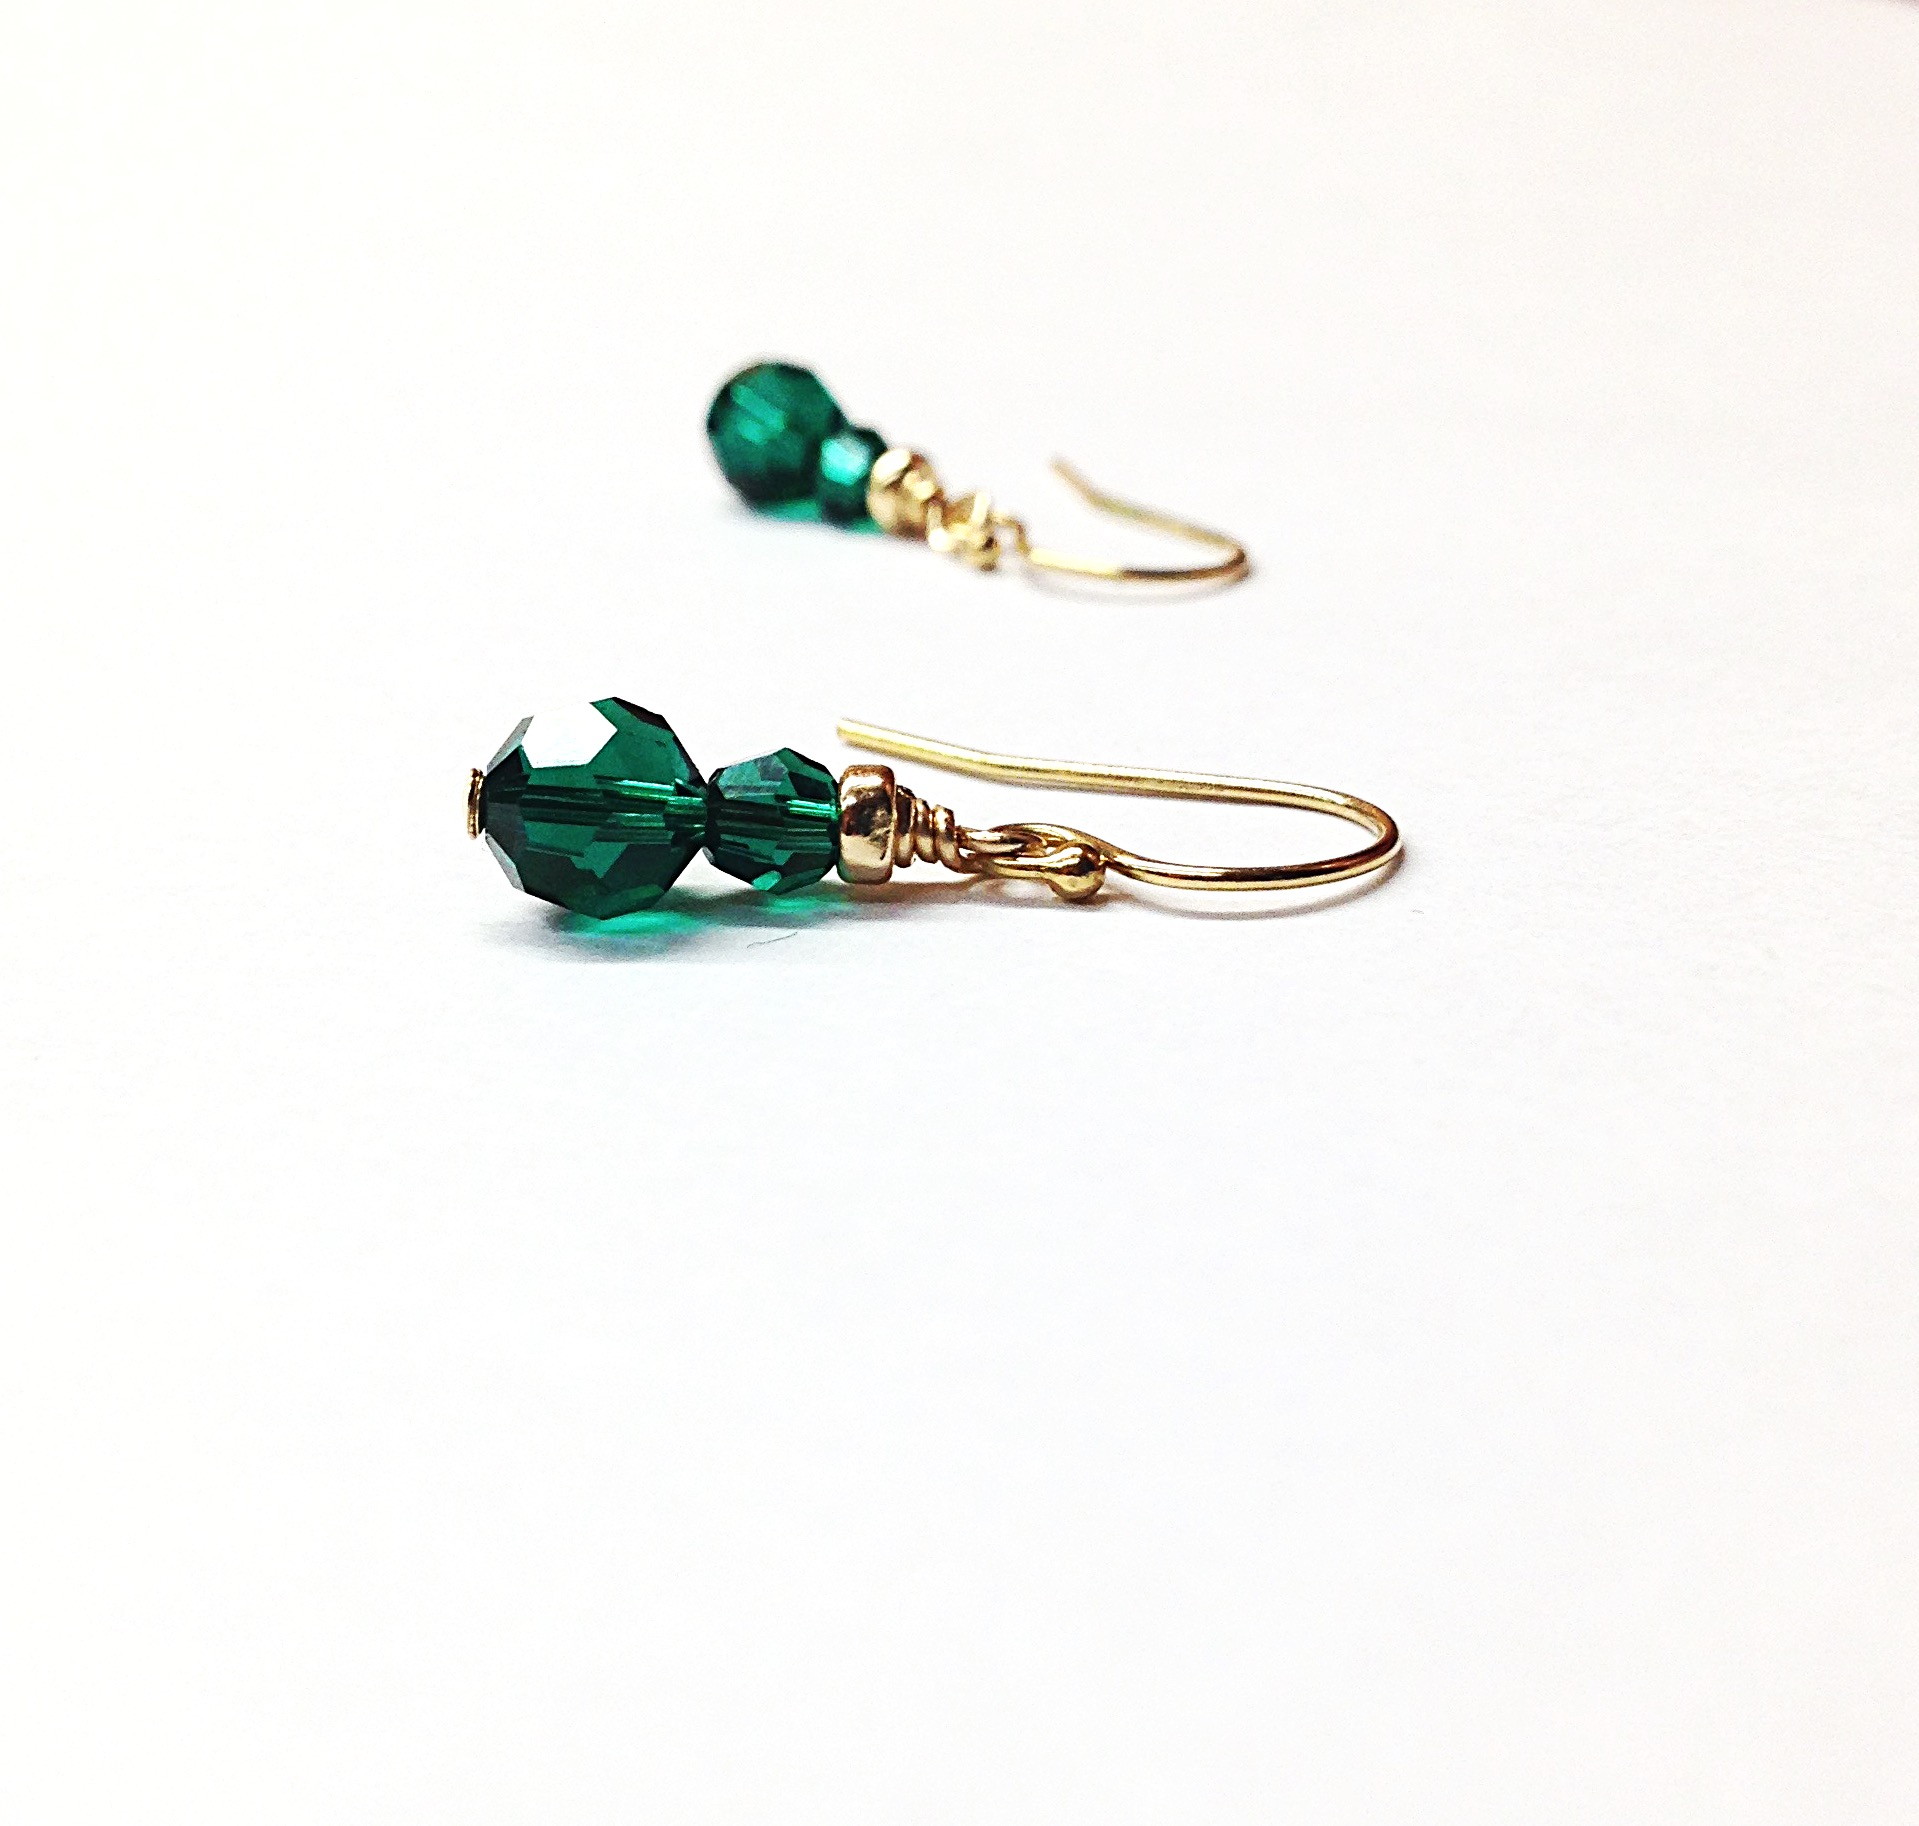 black roberto with earrings official website diamond agate classic designer rose product jadeearrings us coin and green jade category gold classics